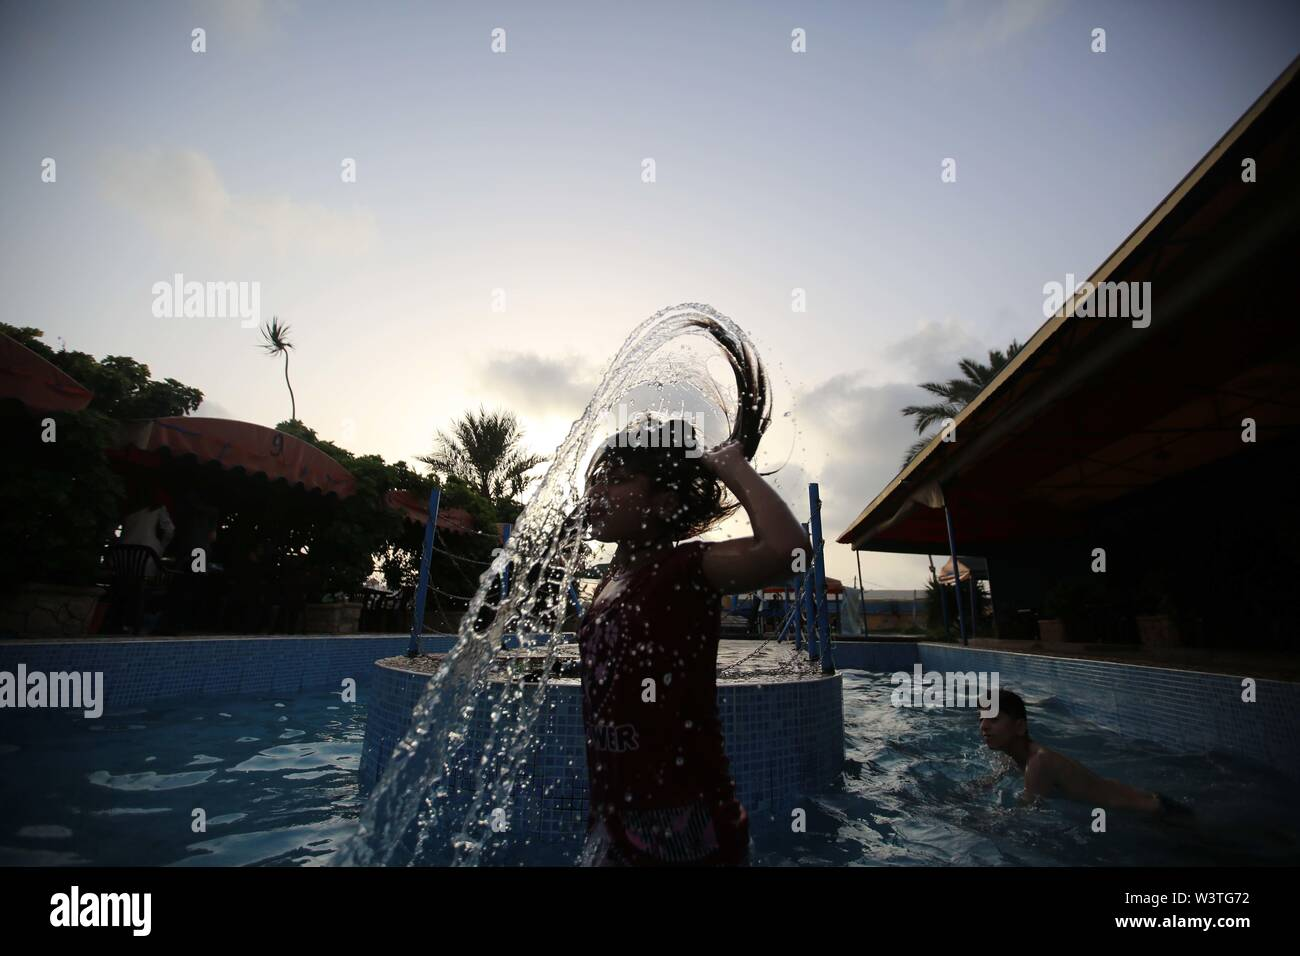 July 17, 2019 - Gaza City, The Gaza Strip, Palestine - A Palestinian girl wave her wet hair at a swimming pool on a hot day in the Gaza Strip. (Credit Image: © Hassan Jedi/Quds Net News via ZUMA Wire) - Stock Image